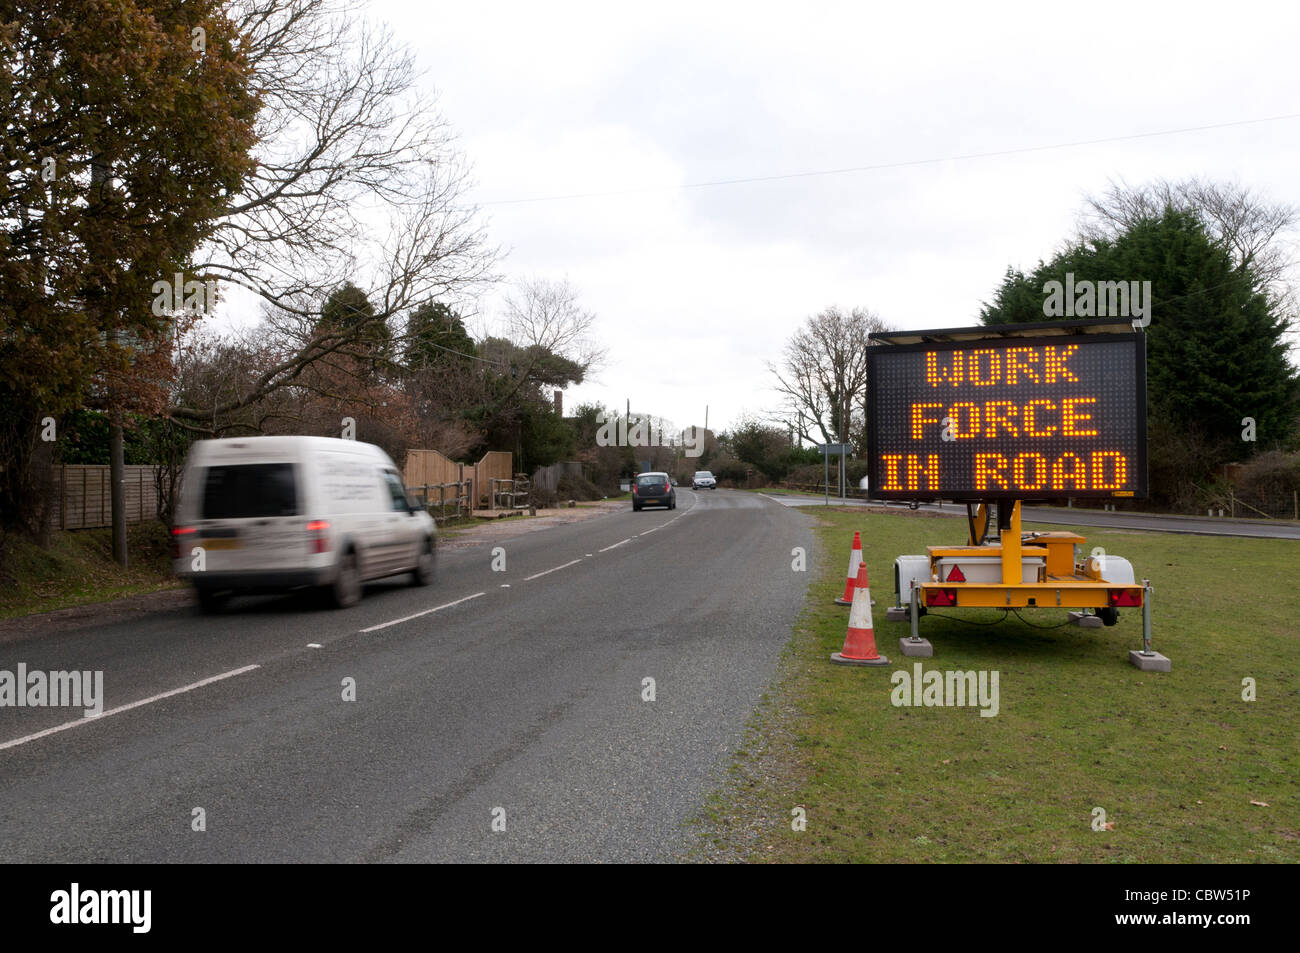 Matrice Mobile Traffic Sign Photo Stock